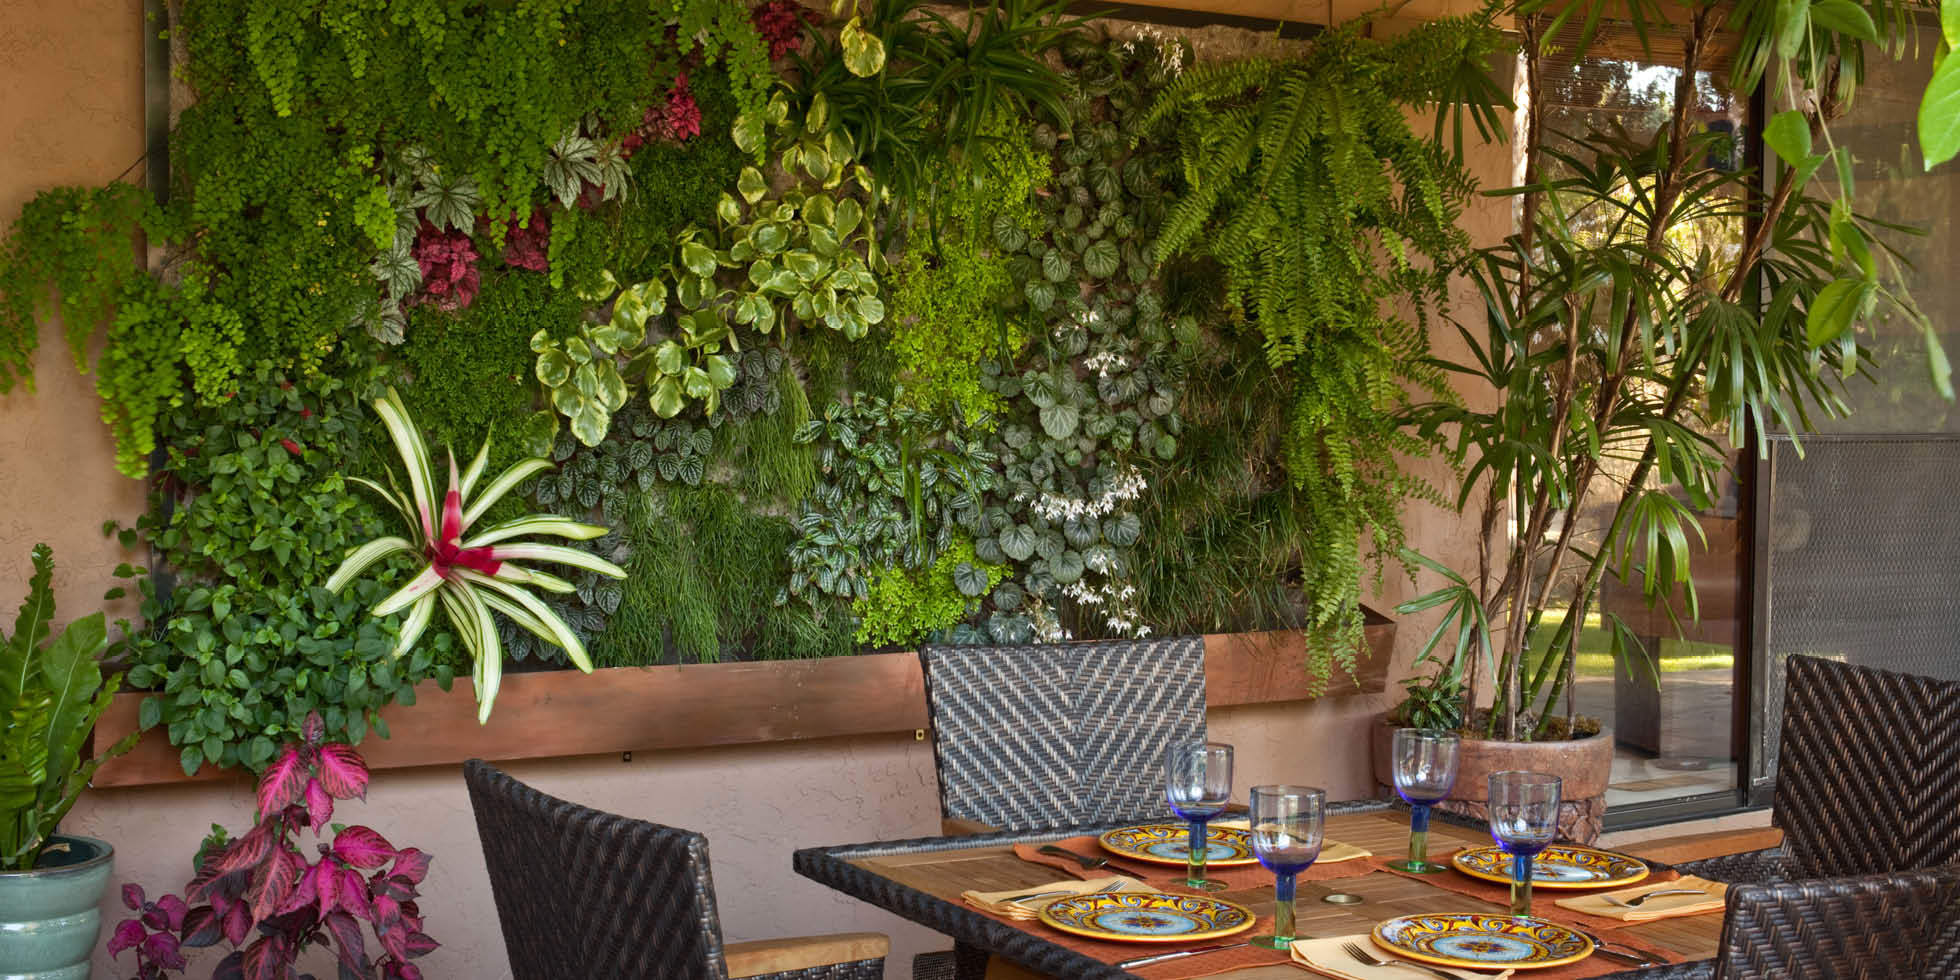 Willow Glen Patio Living Wall by Habitat Horticulture - View 1